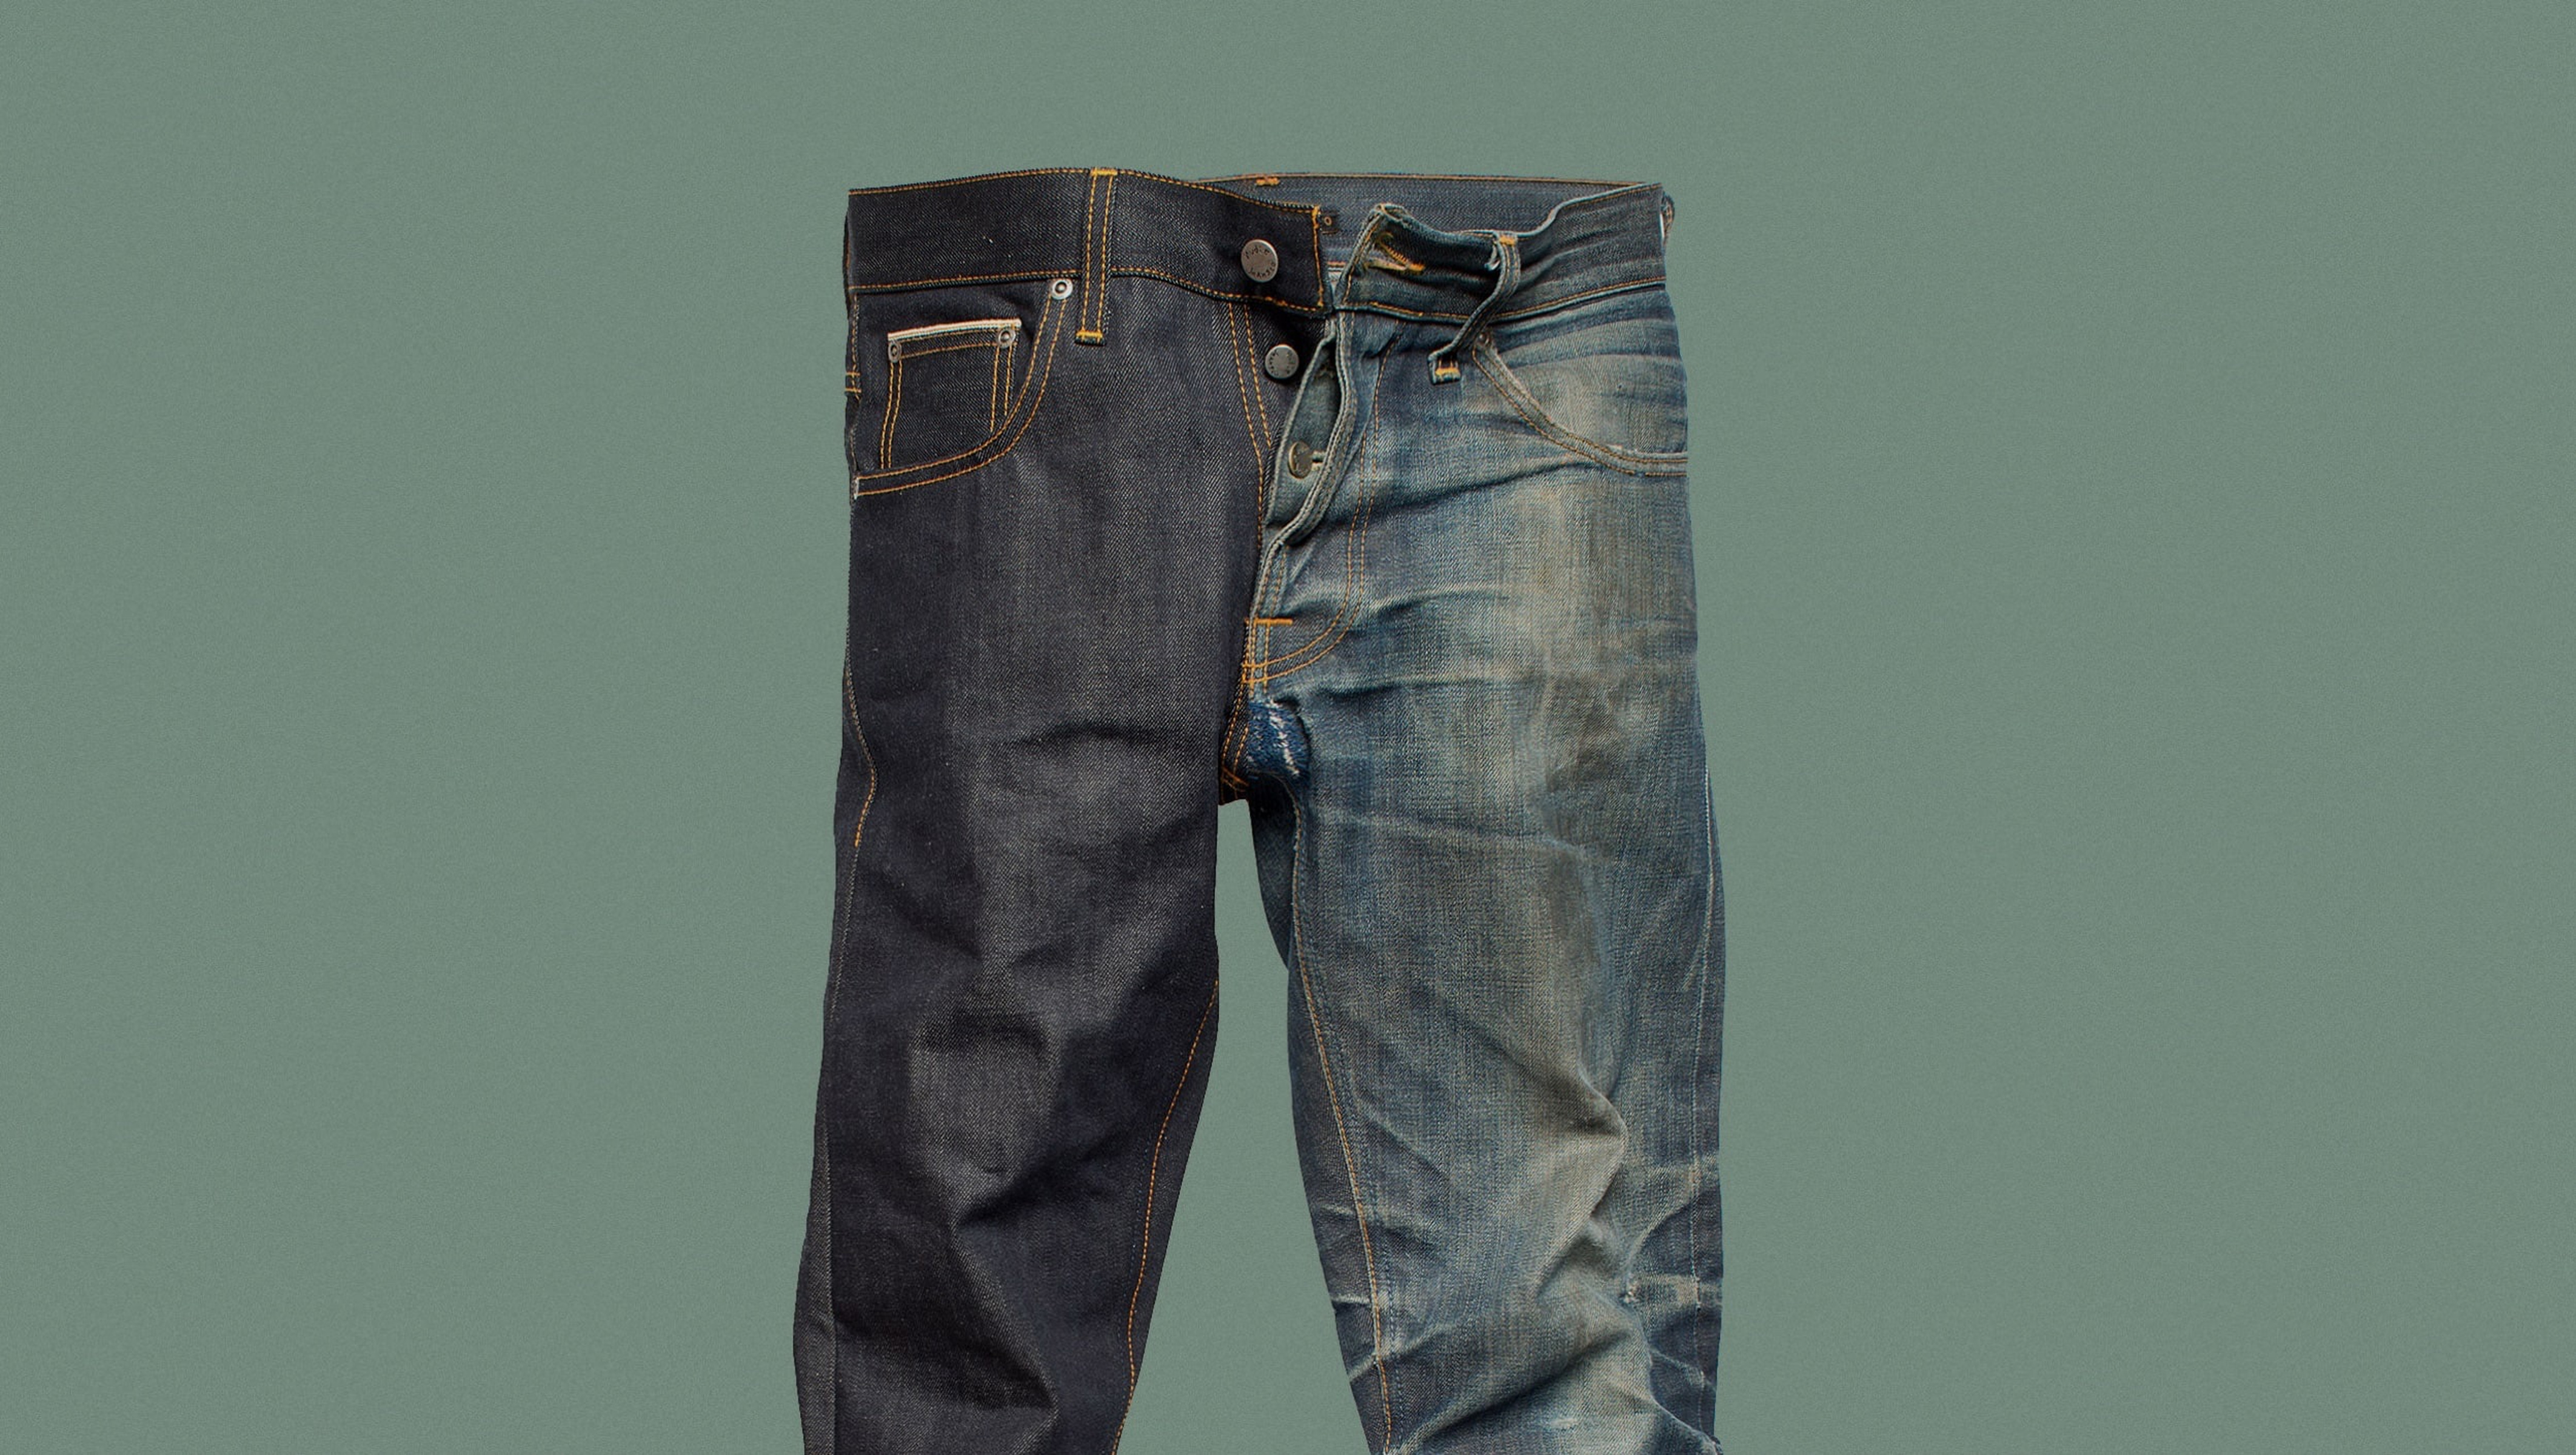 Dry  jeans  verus  a  worn  in  pair